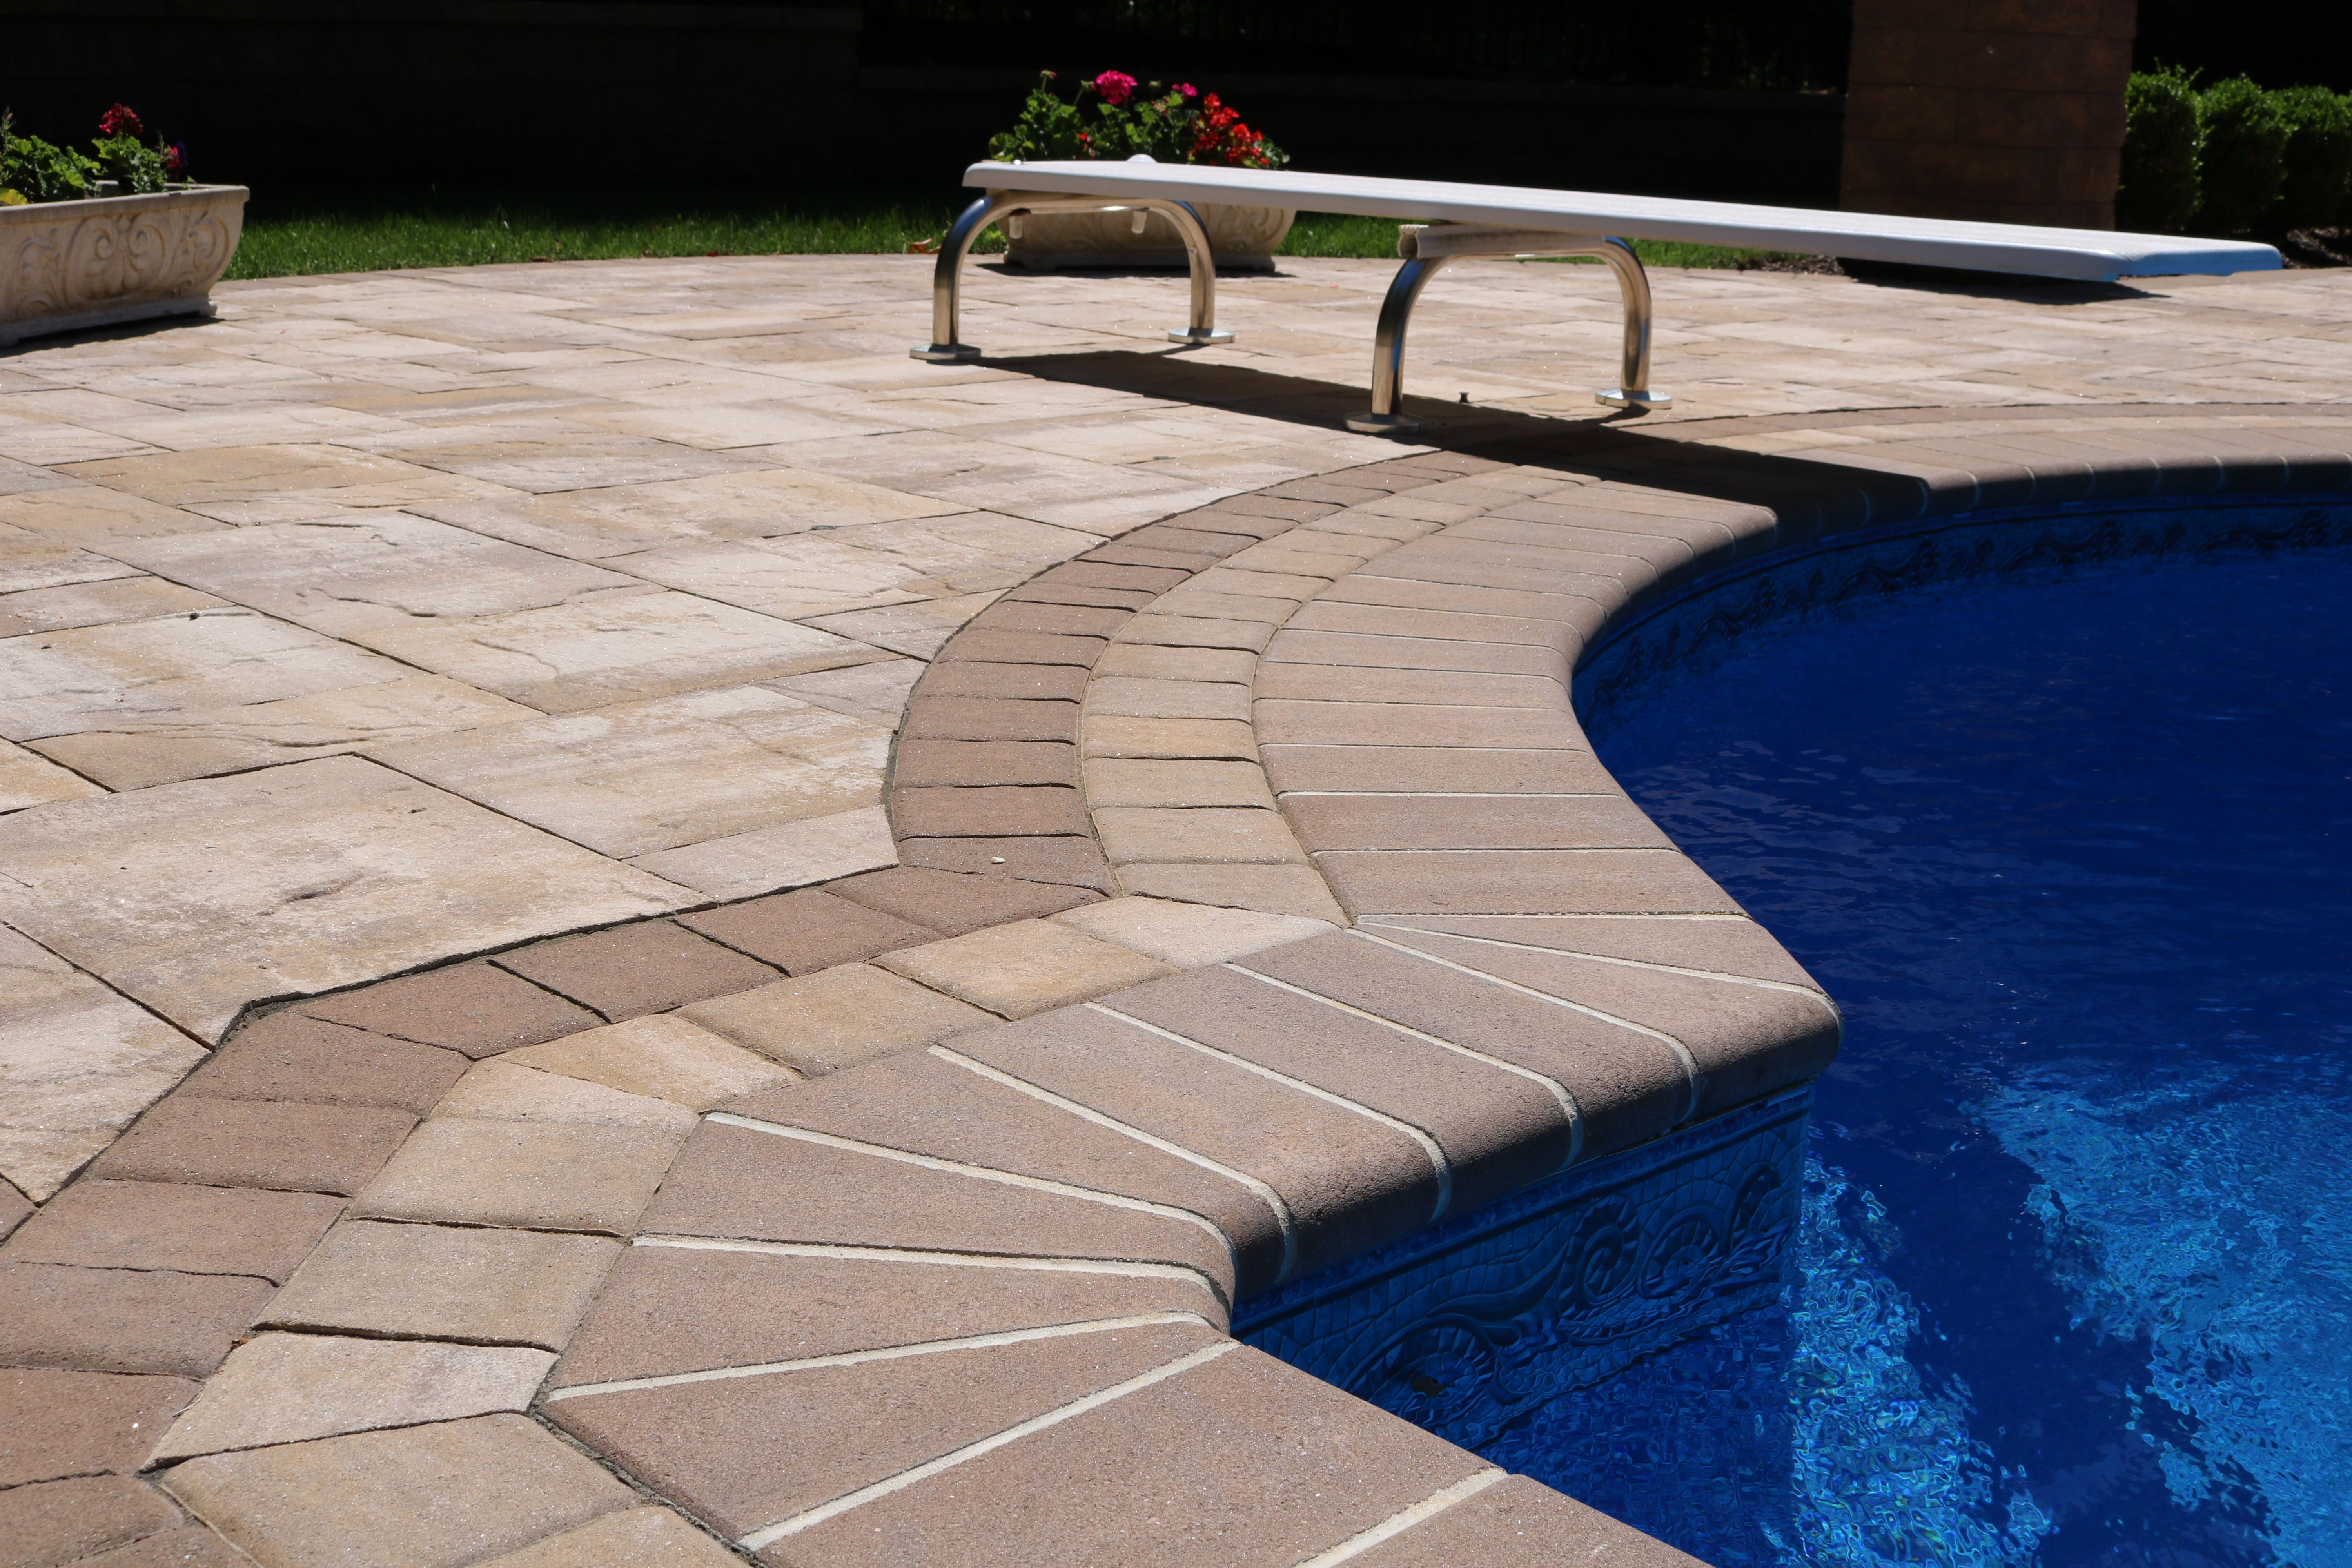 Deciding which pavingstones to use in your backyard? Just click on this picture to view more of the amazing Cambridge Pavingstones and your decision will be made in seconds. Installation: Five Star Landscaping